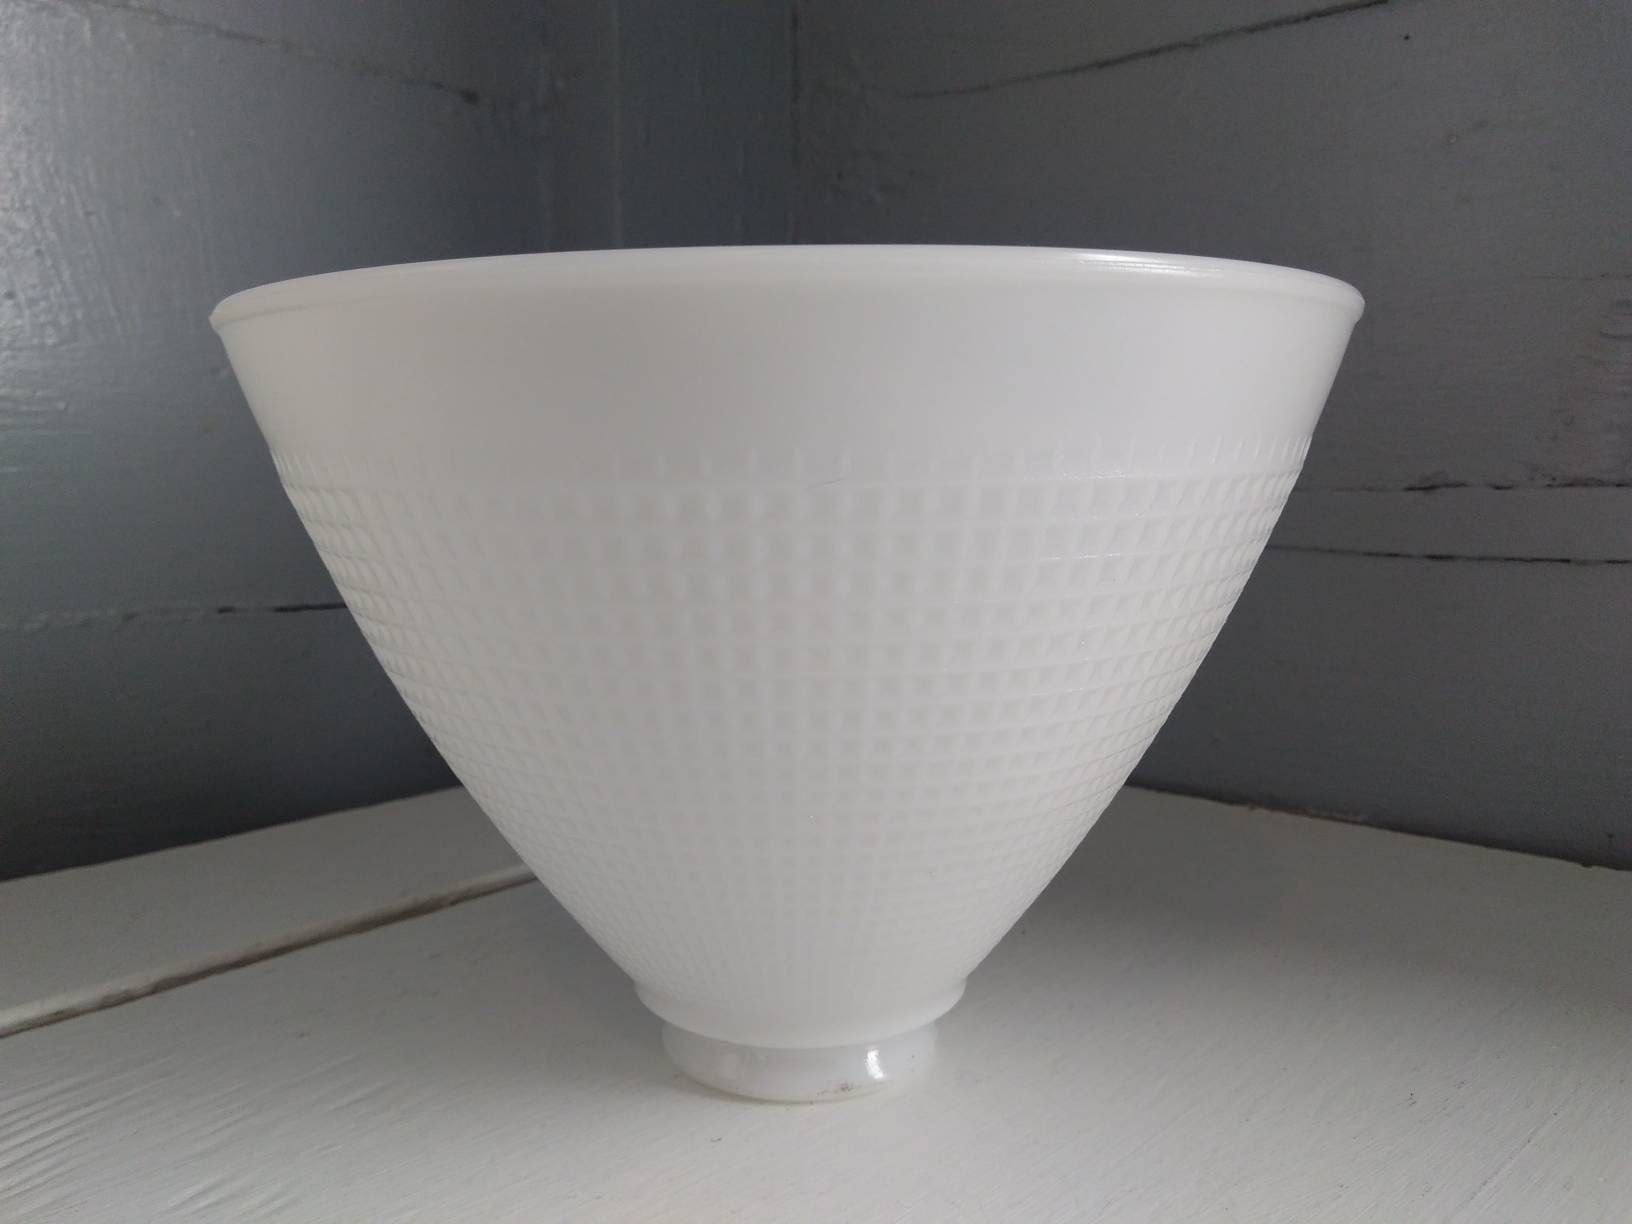 Vintage Art Deco 8 Inch Lamp Shade Glass White Floor Lamp Shade Globe Torchiere Diffuser Repl White Milk Glass Floor Lamp Shades Lamp Shade